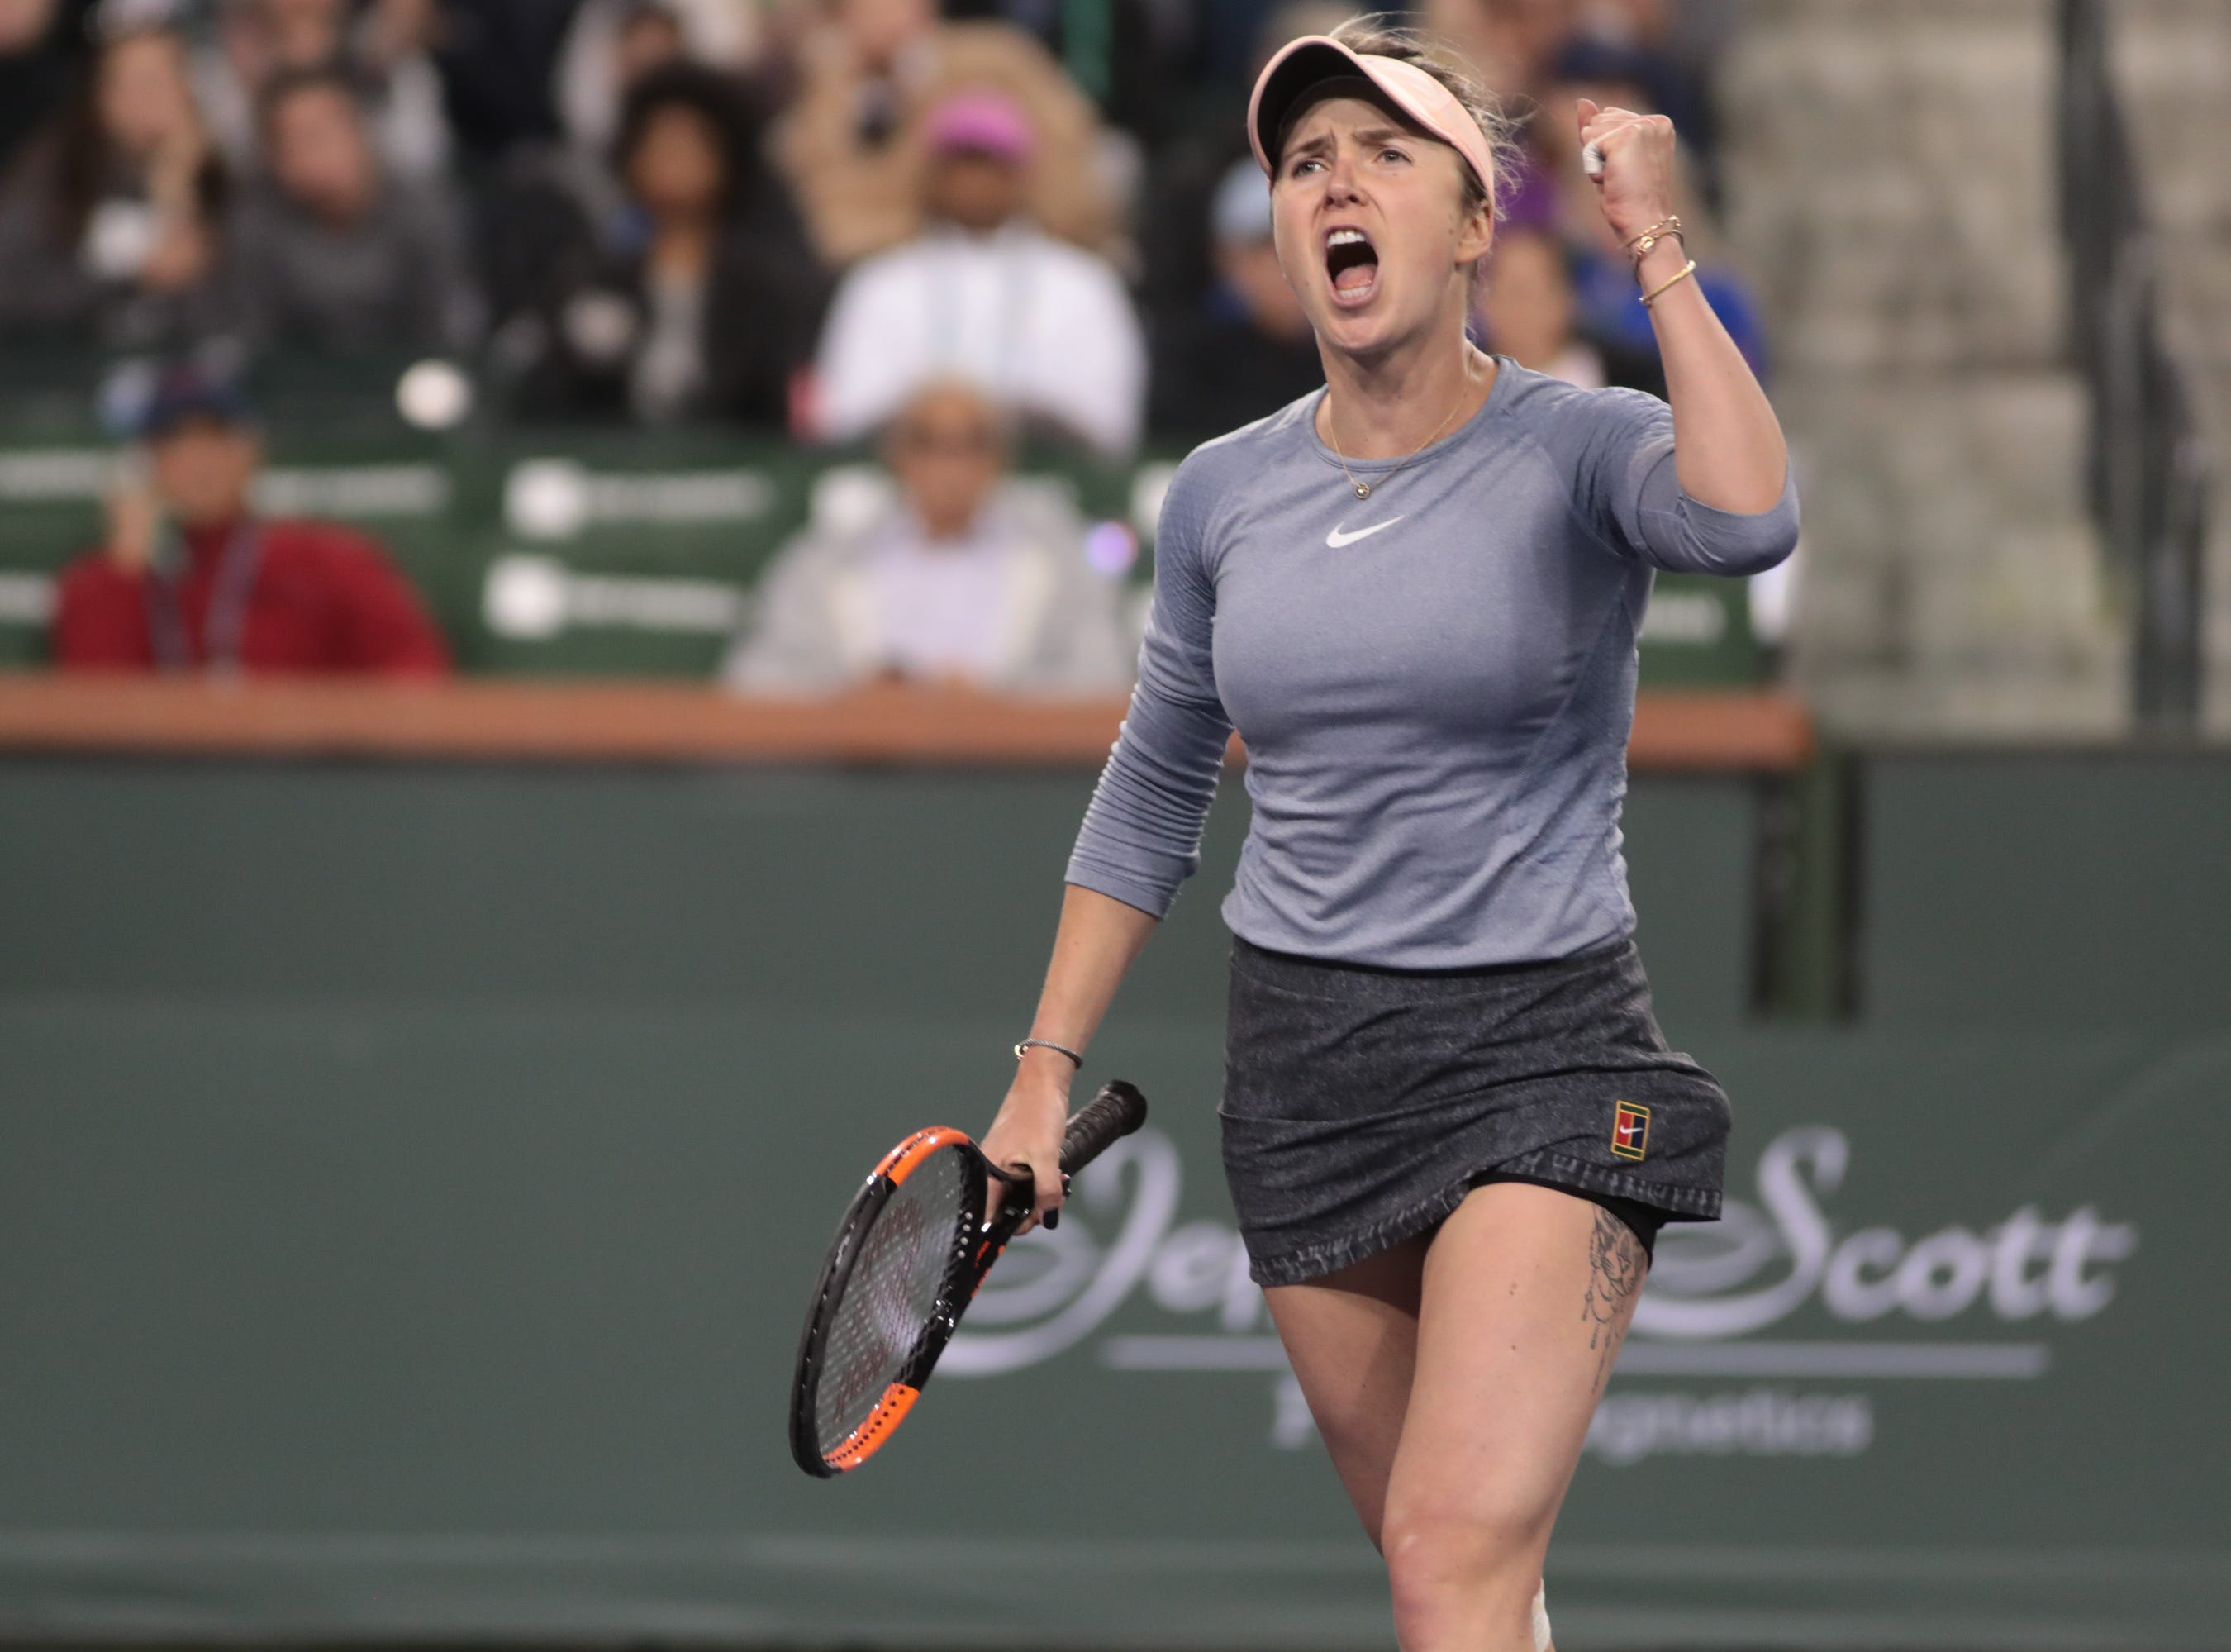 Elina Svitolina reacts after a point in the third set of her match against Marketa Vondrousova at the BNP Paribas Open in Indian Wells, Calif., March 13, 2019.